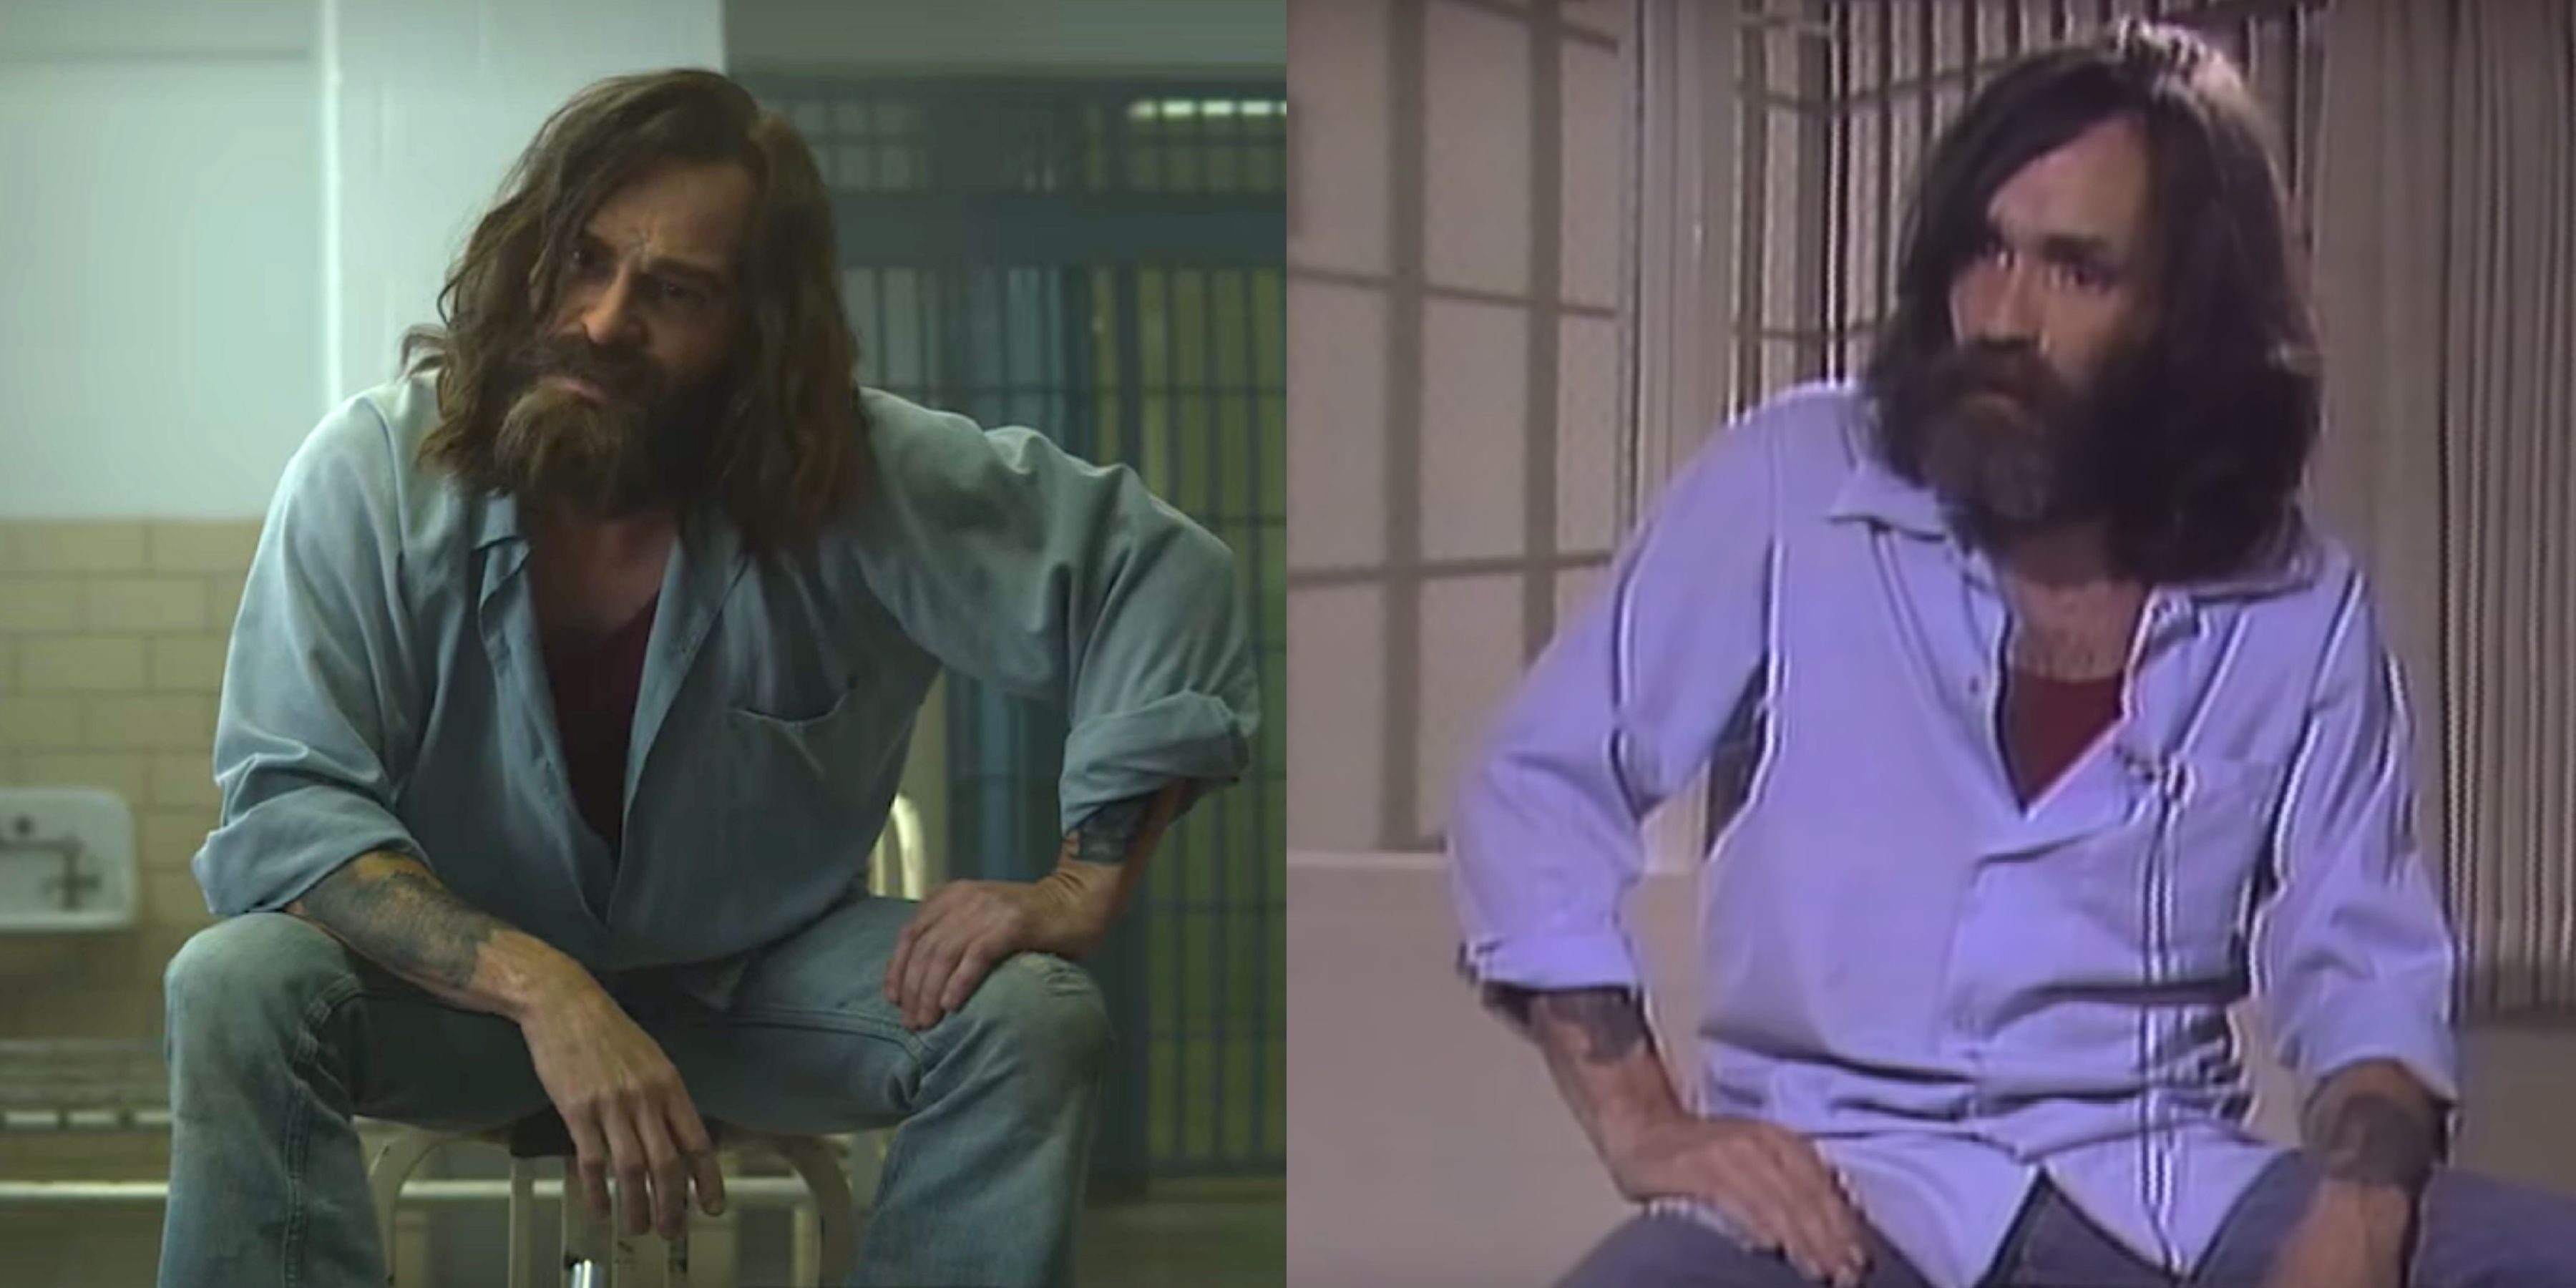 A Mindhunter Fan Put the Charles Manson Scene Side-By-Side With an Actual 1981 Interview